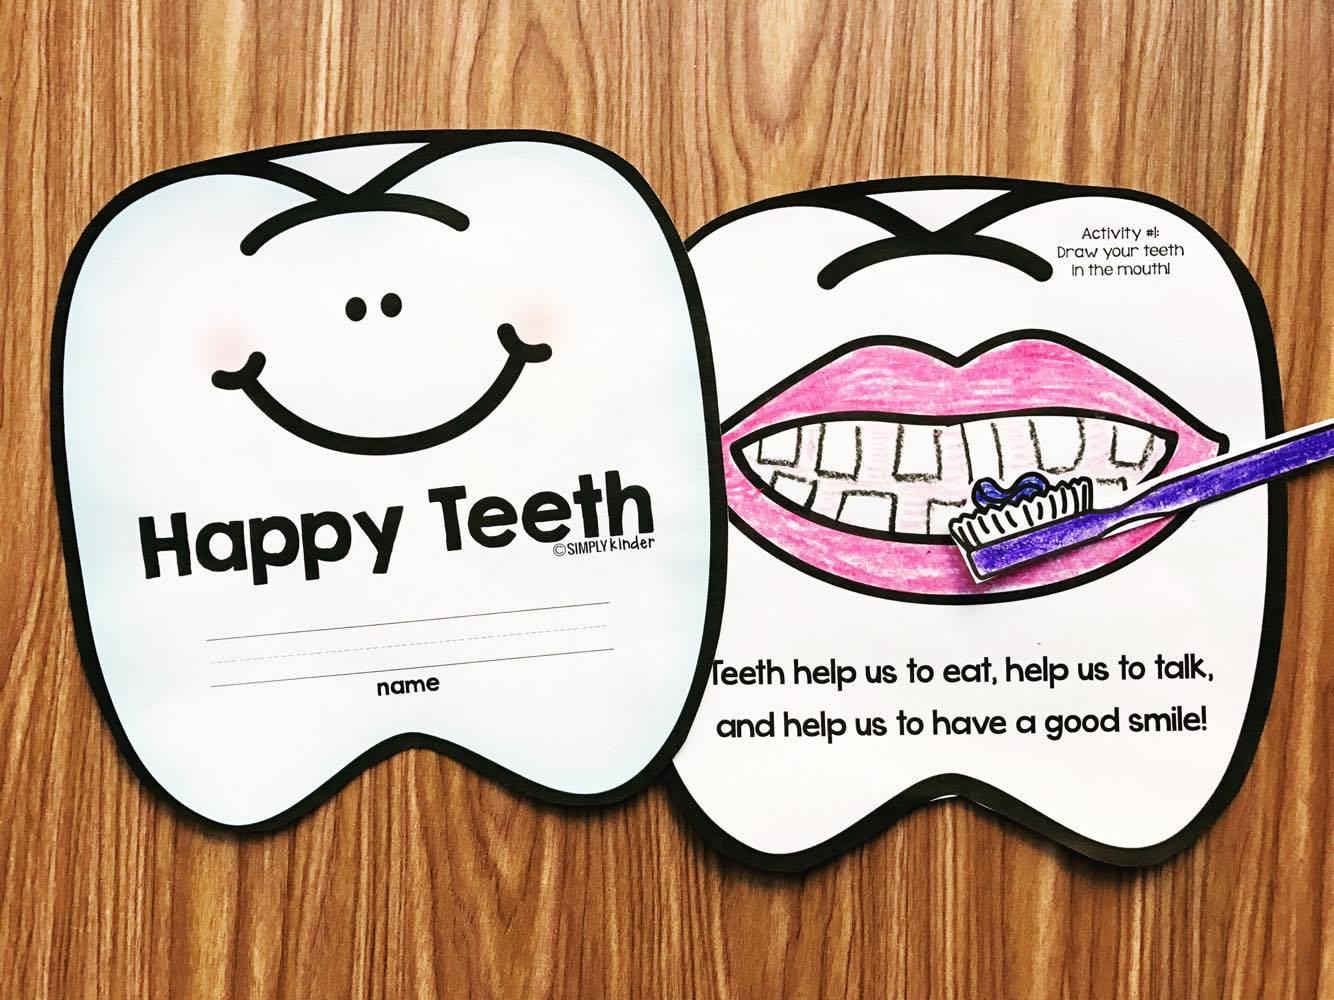 Dental Health Month Book for preschool, kindergarten, and first grades.  Students will read each page and do a fun activity like brush the teeth or sorting out sugary foods.